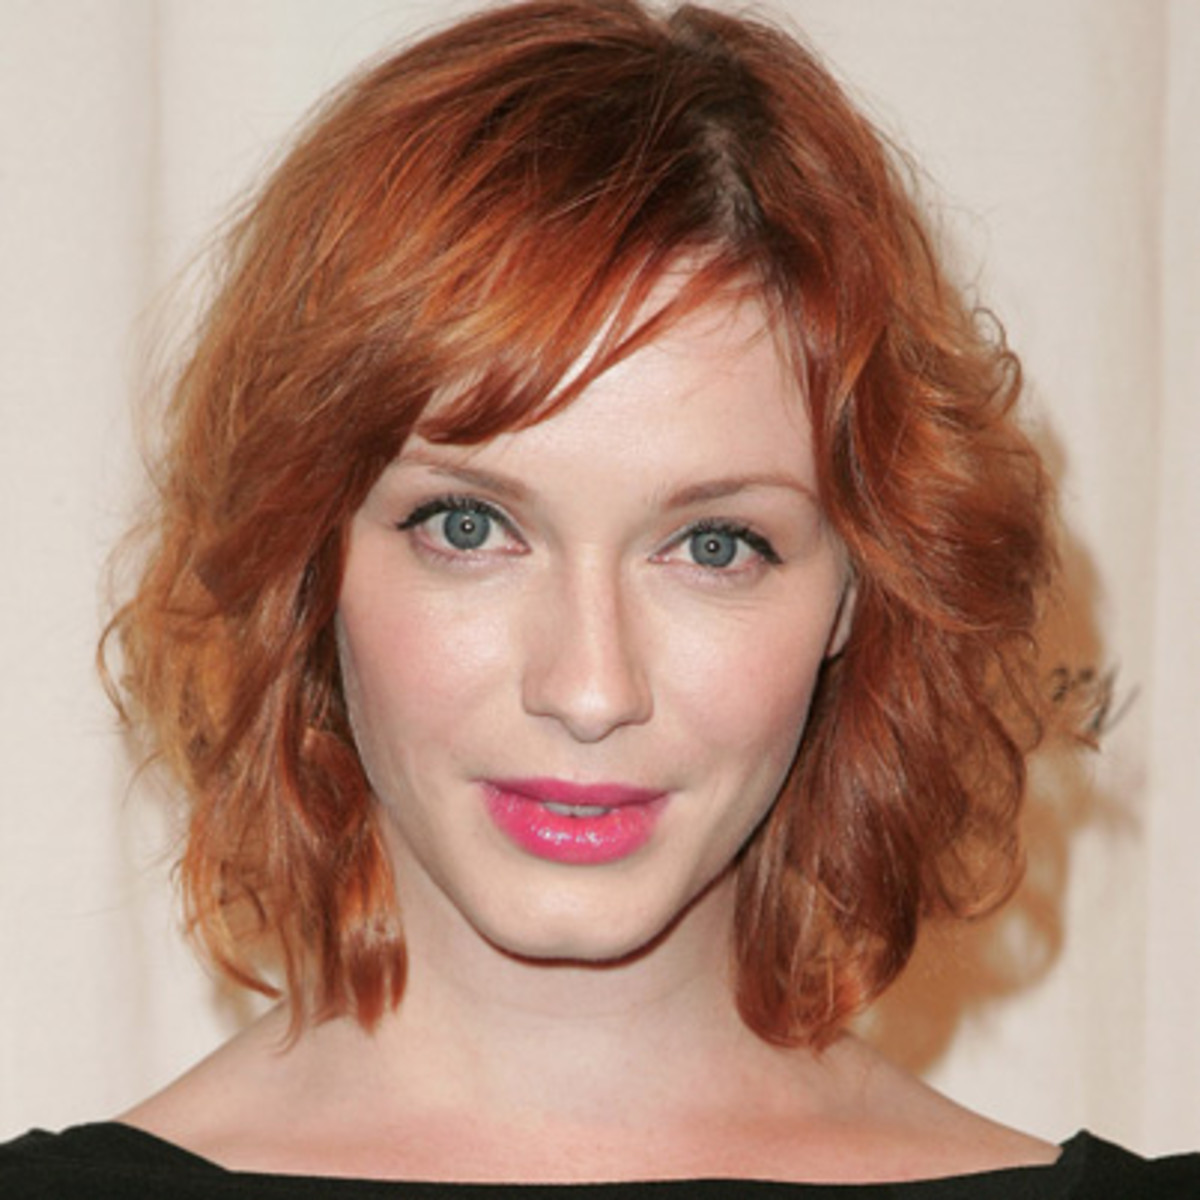 Christina Hendricks Television Actress Actress Biography